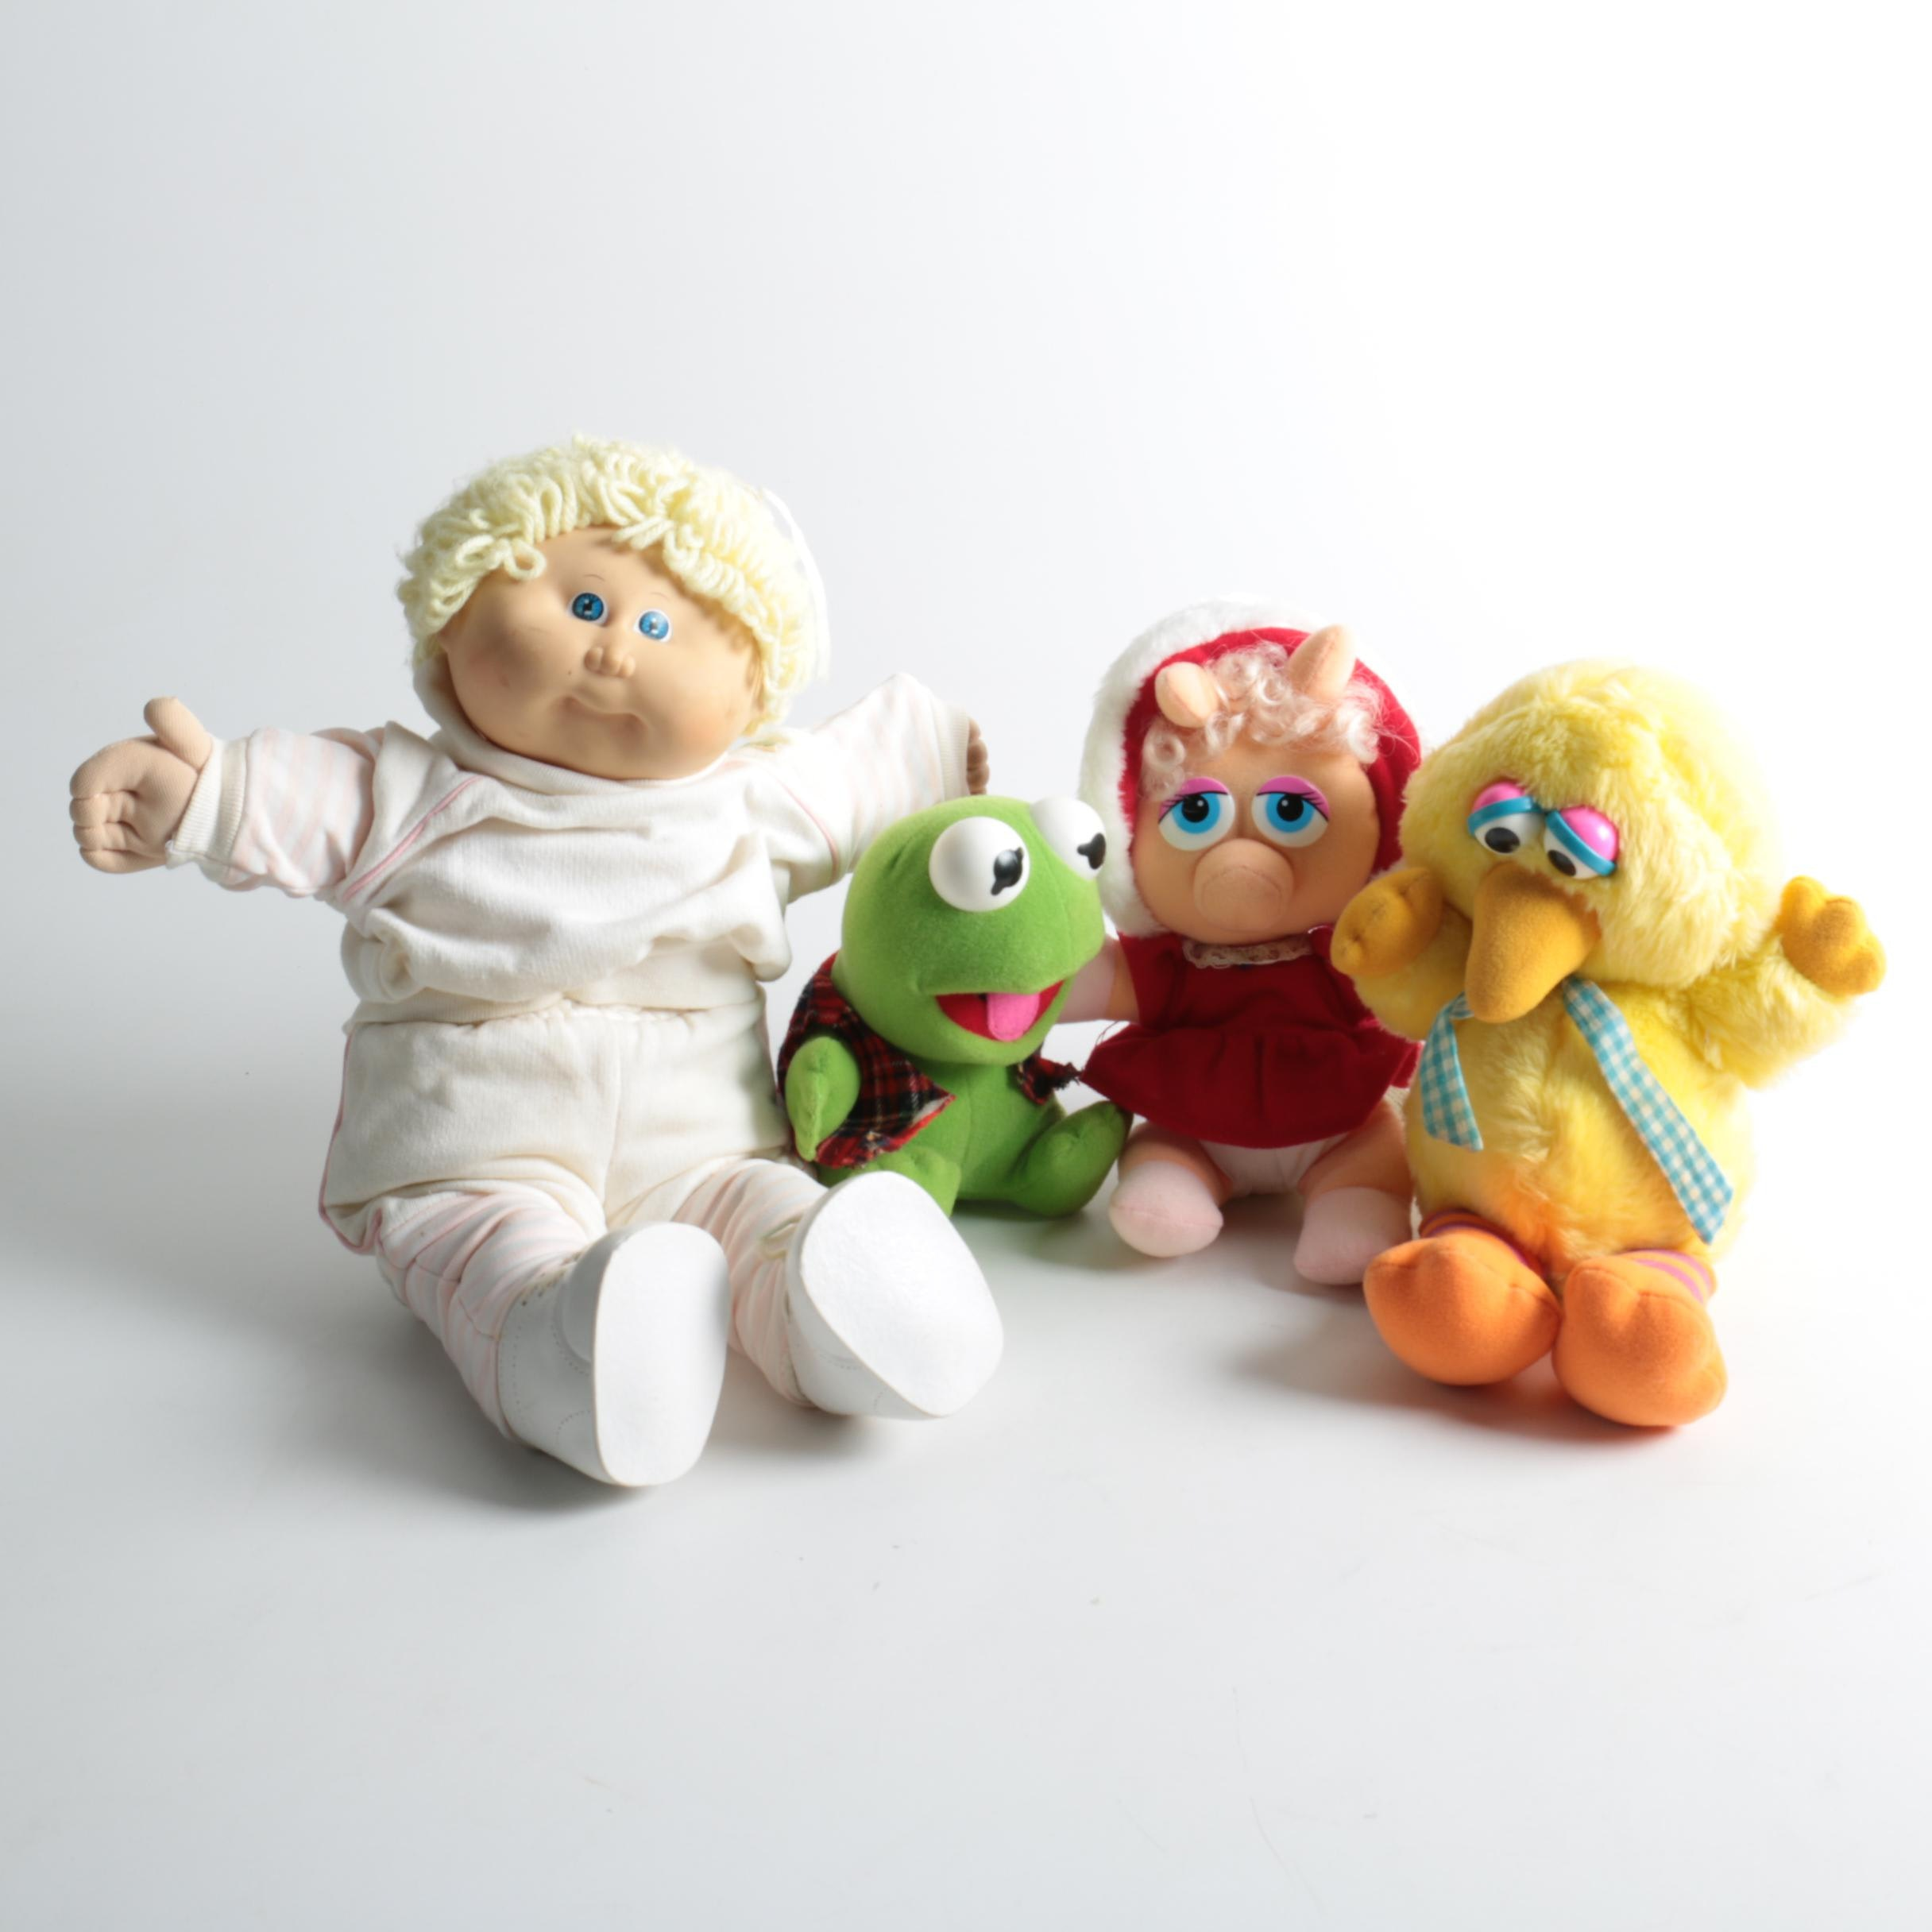 Vintage Cabbage Patch Kid, Muppets, and Sesame Street Dolls